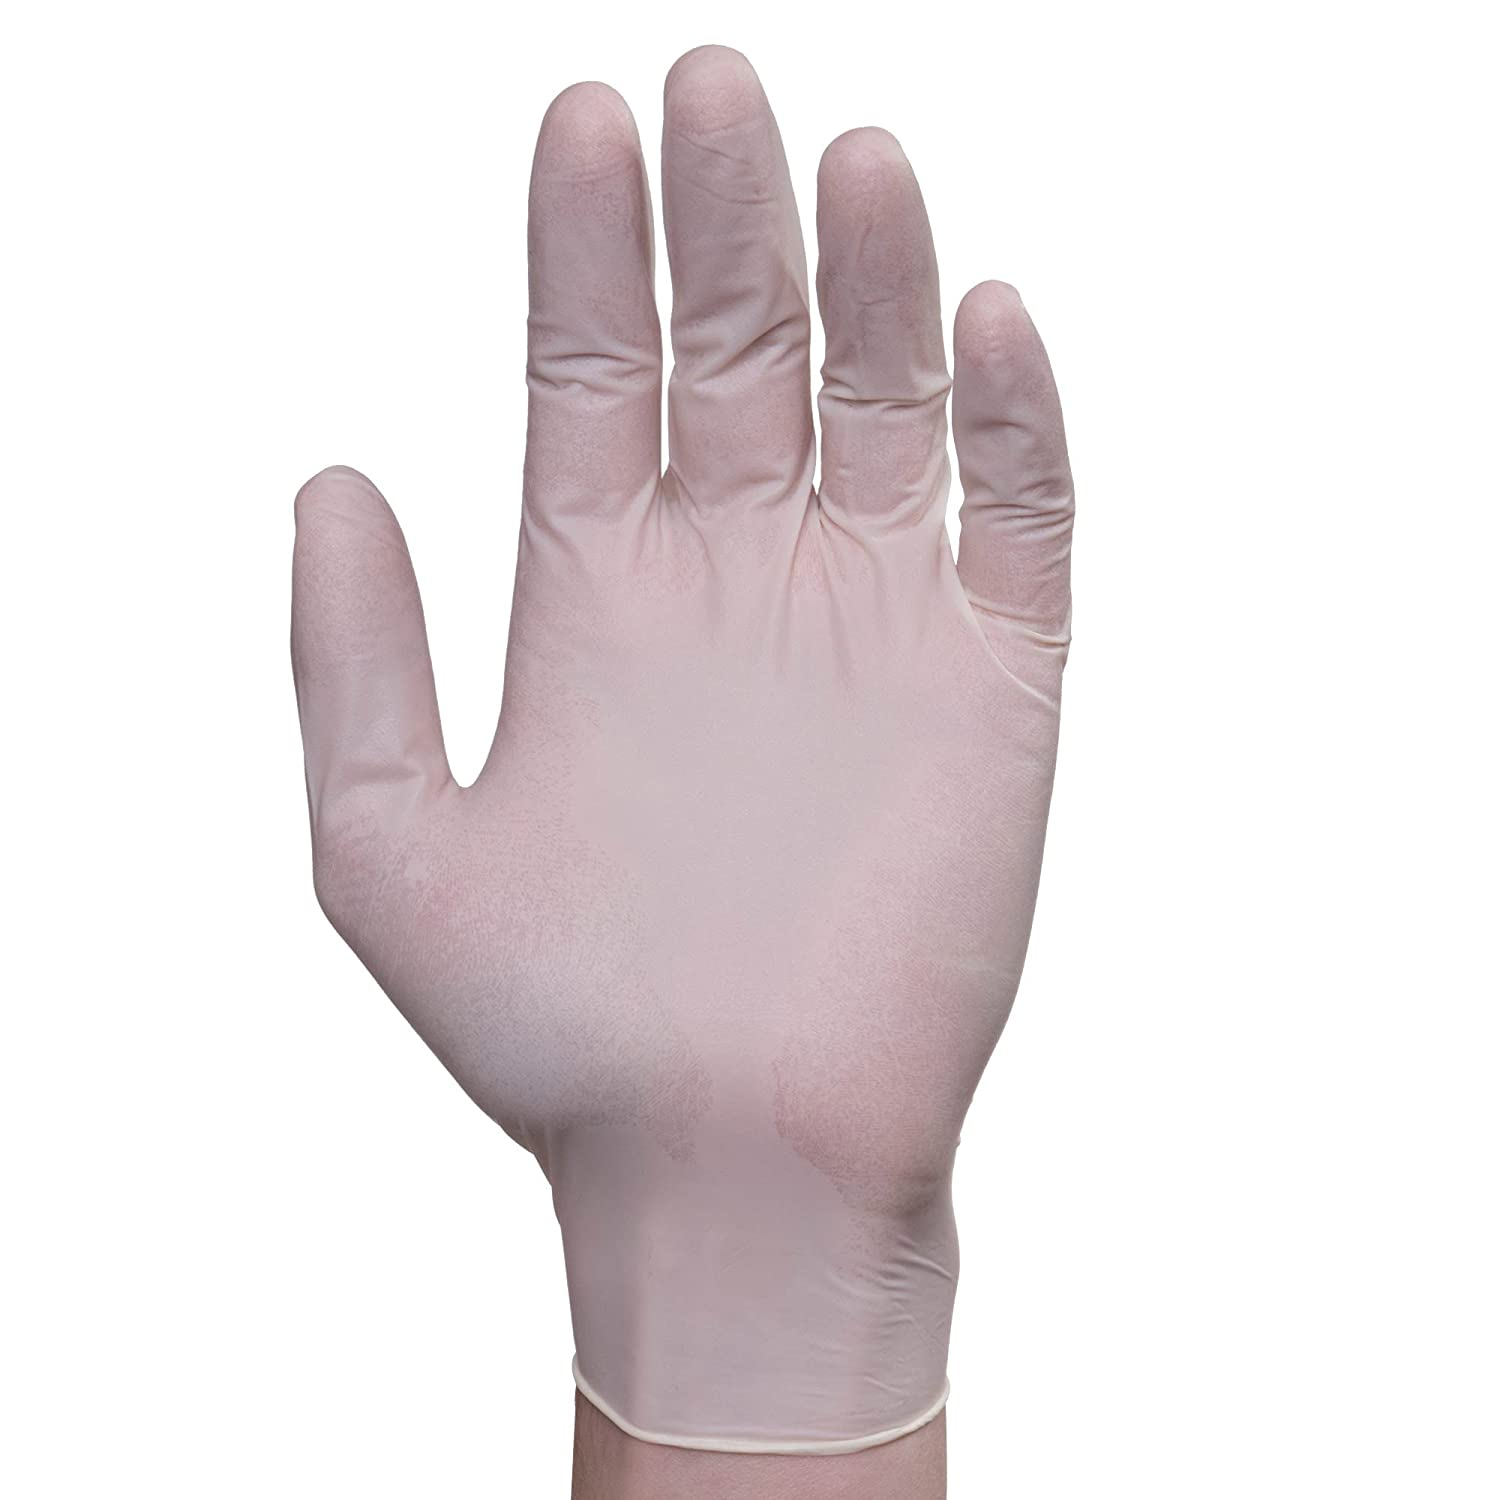 Elara FL104 Natrufit Disposable Latex Glove, Lightly Powdered, Phthalate Free, PVC Free, BPA Free, Food Service, Industrial, Janitorial, X-Large (Case of 1000)